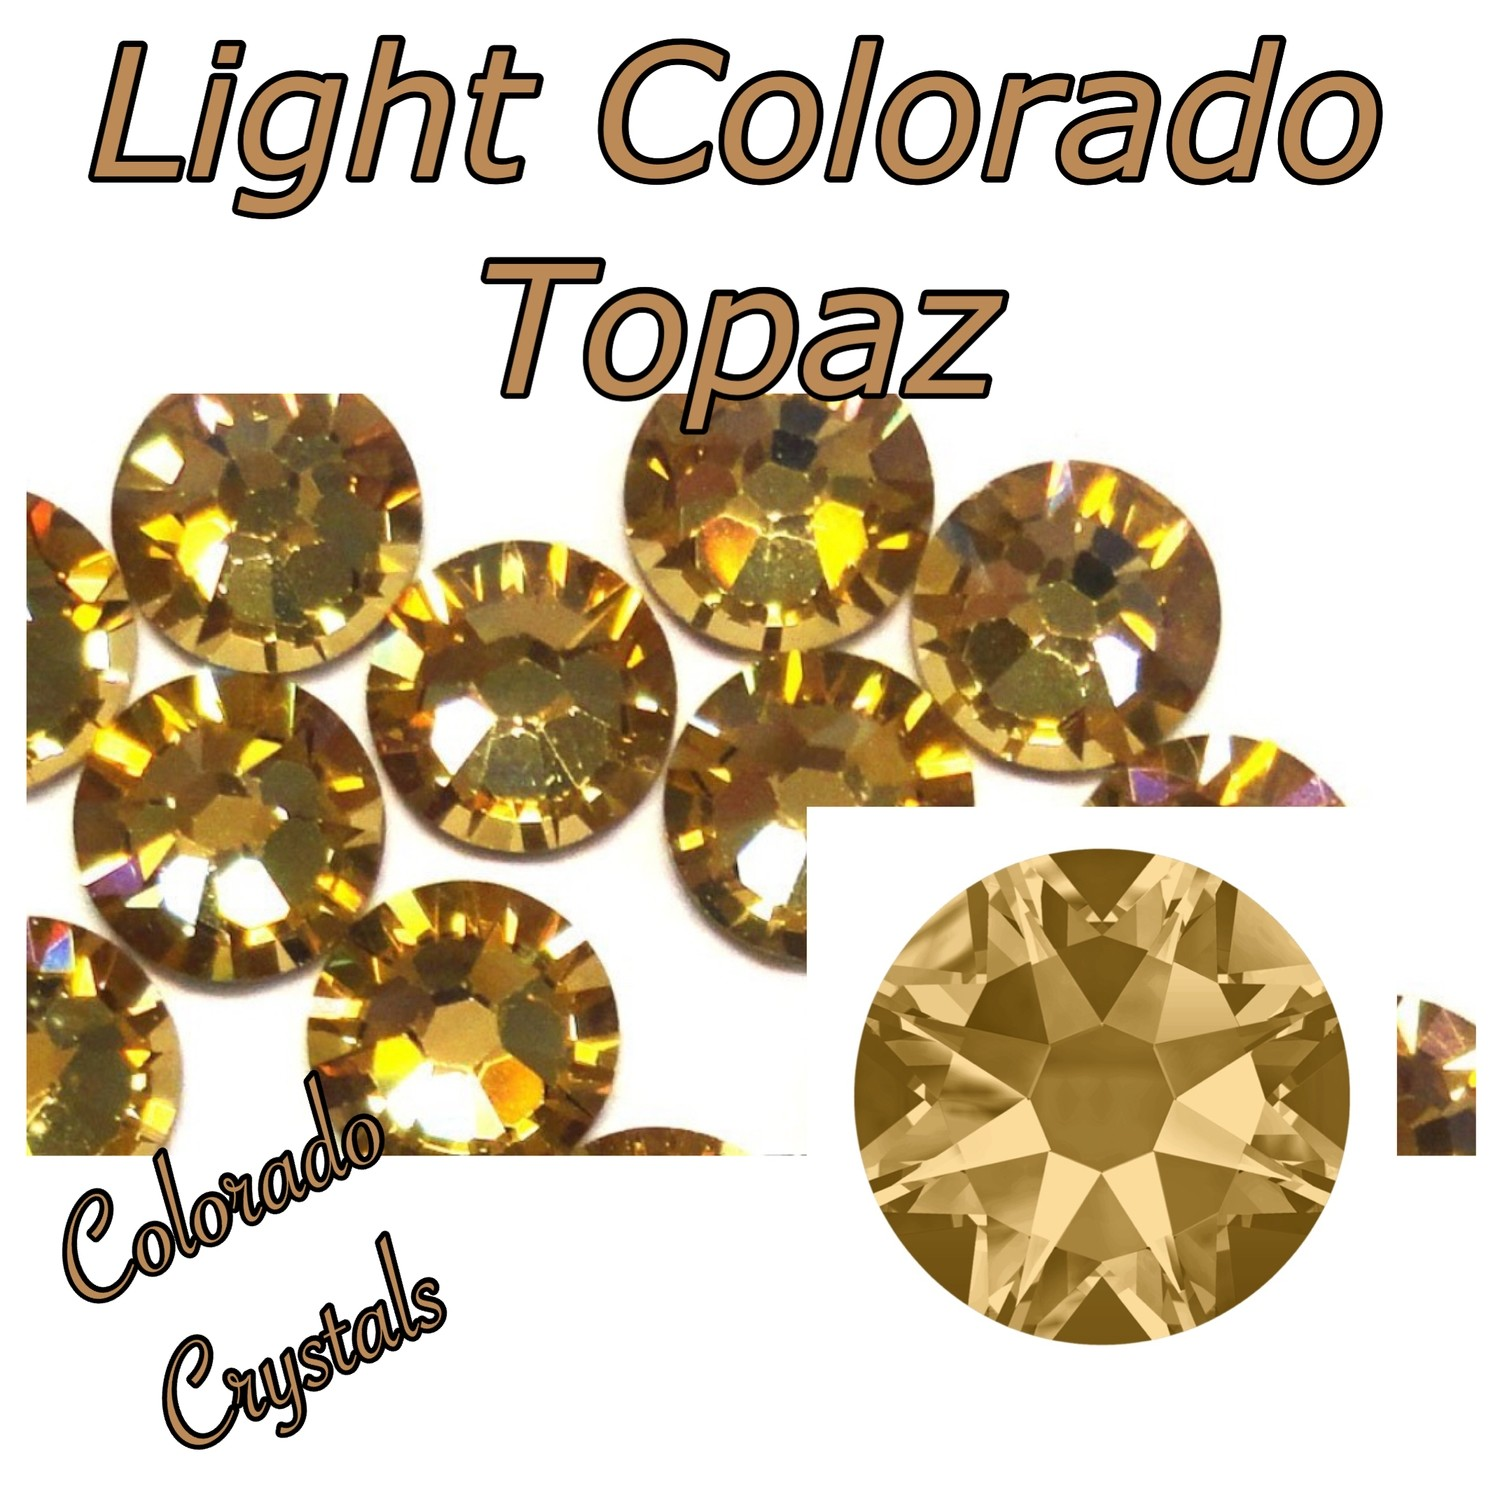 Light Colorado Topaz 12ss 2088 Limited